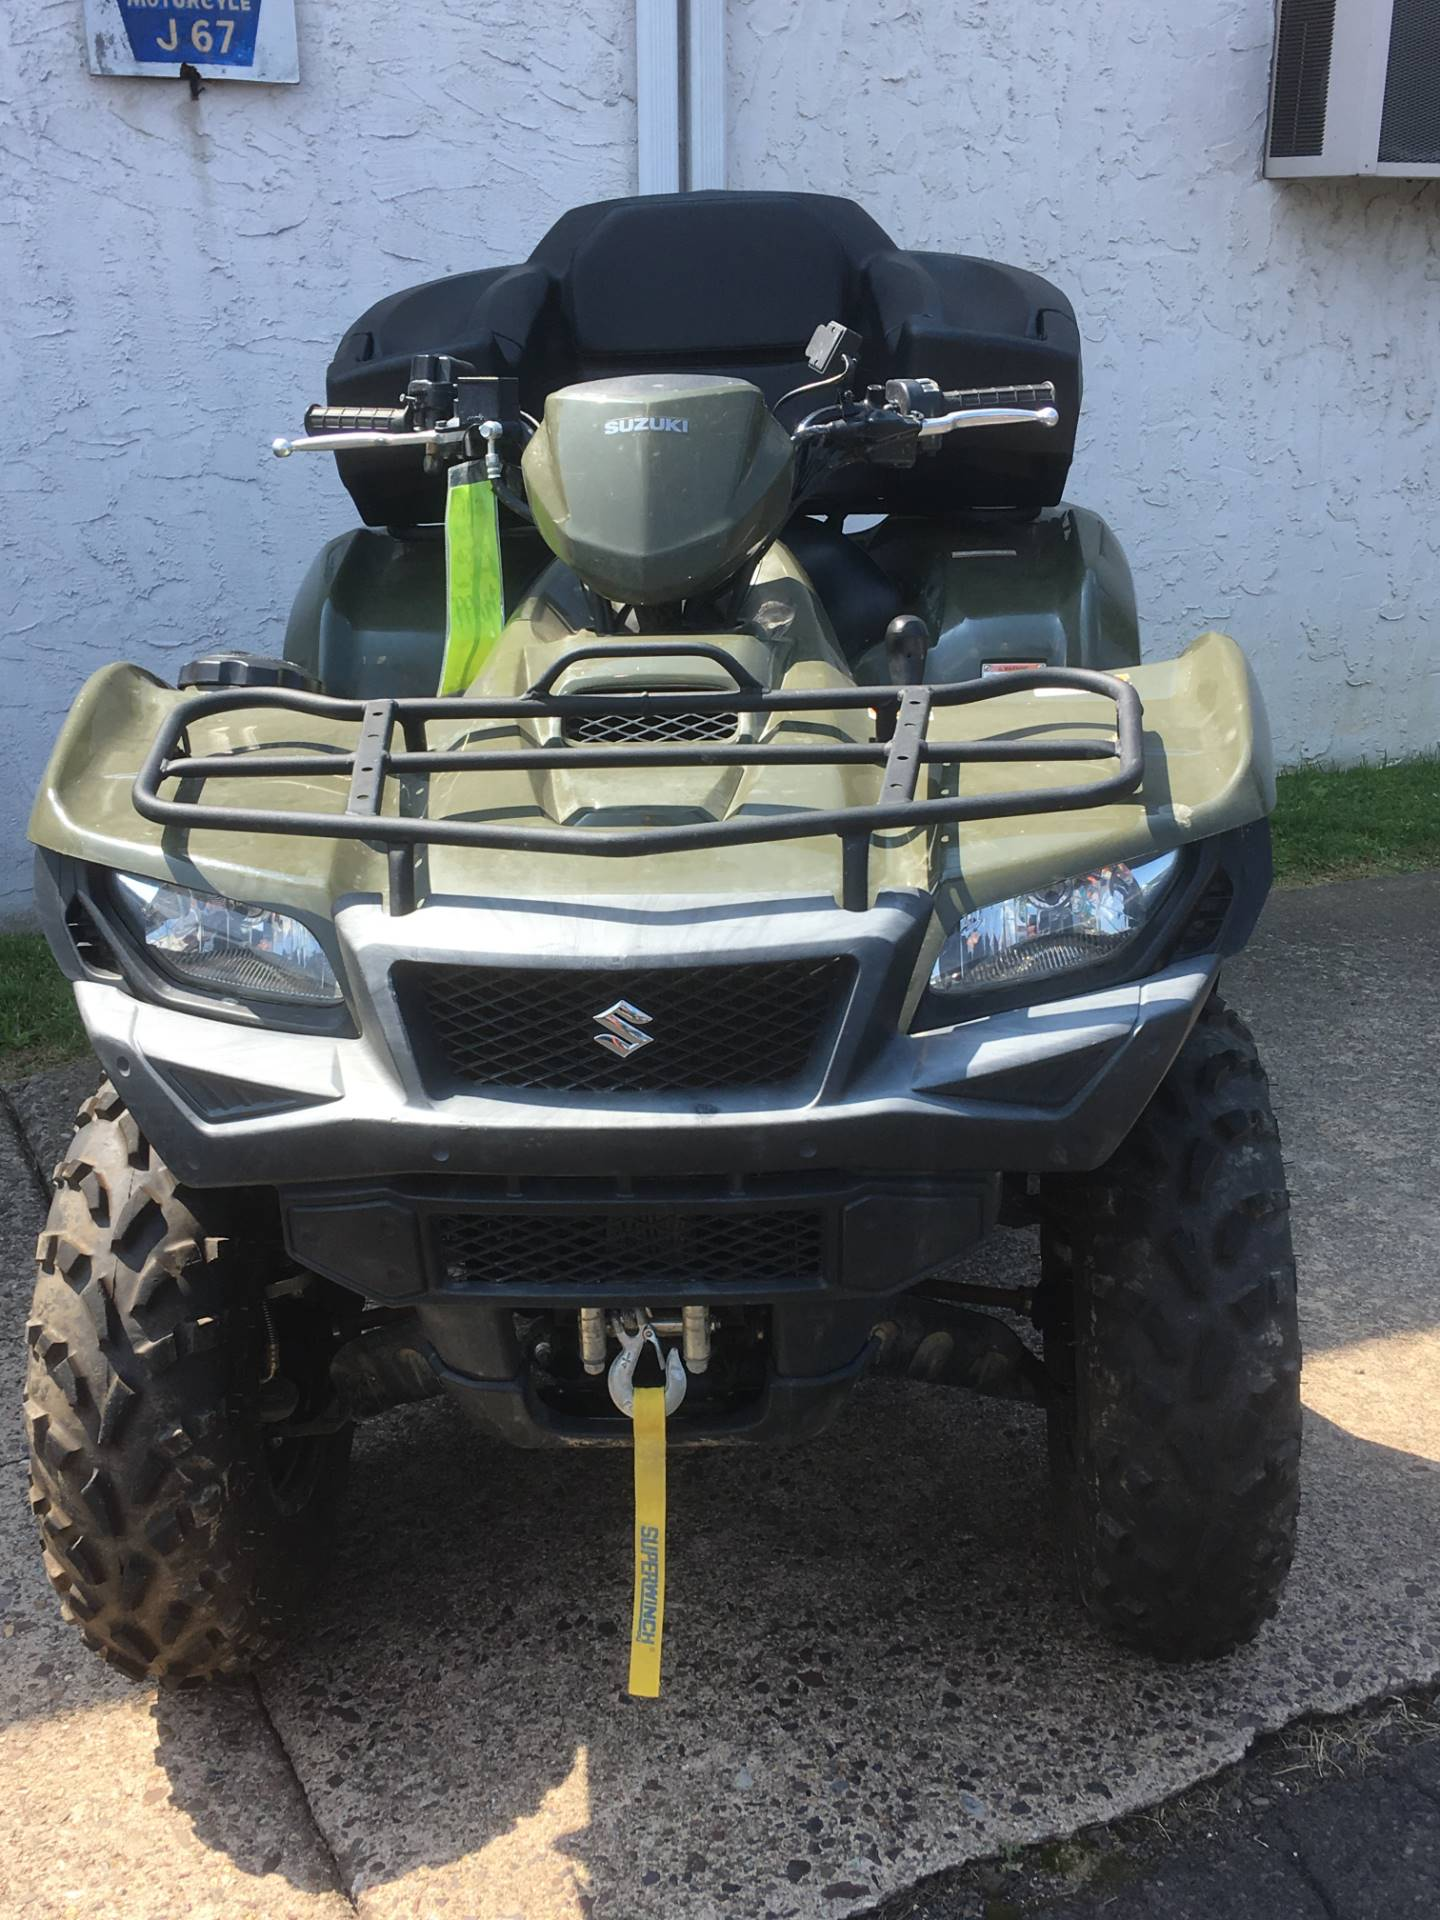 2016 Suzuki KingQuad 750AXi in Trevose, Pennsylvania - Photo 1